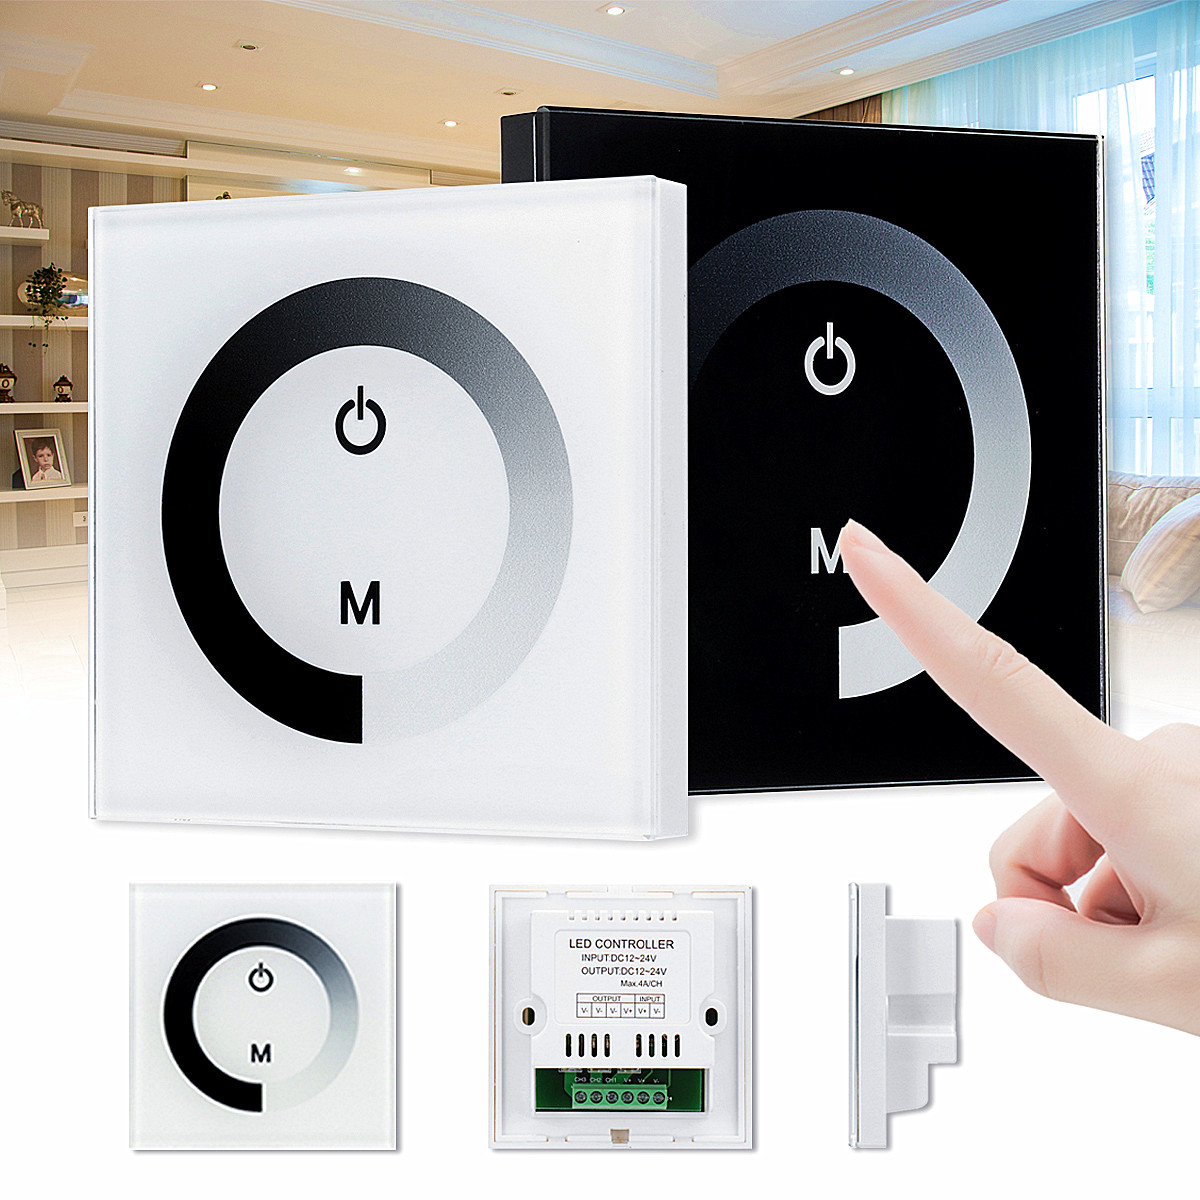 LED Controller Pannel Smart Switch Led Dimmer Touch. 12V-24V Single Color LED Touch. Switch Panel Controller LED Strip Lights ballu bhc l06 s03